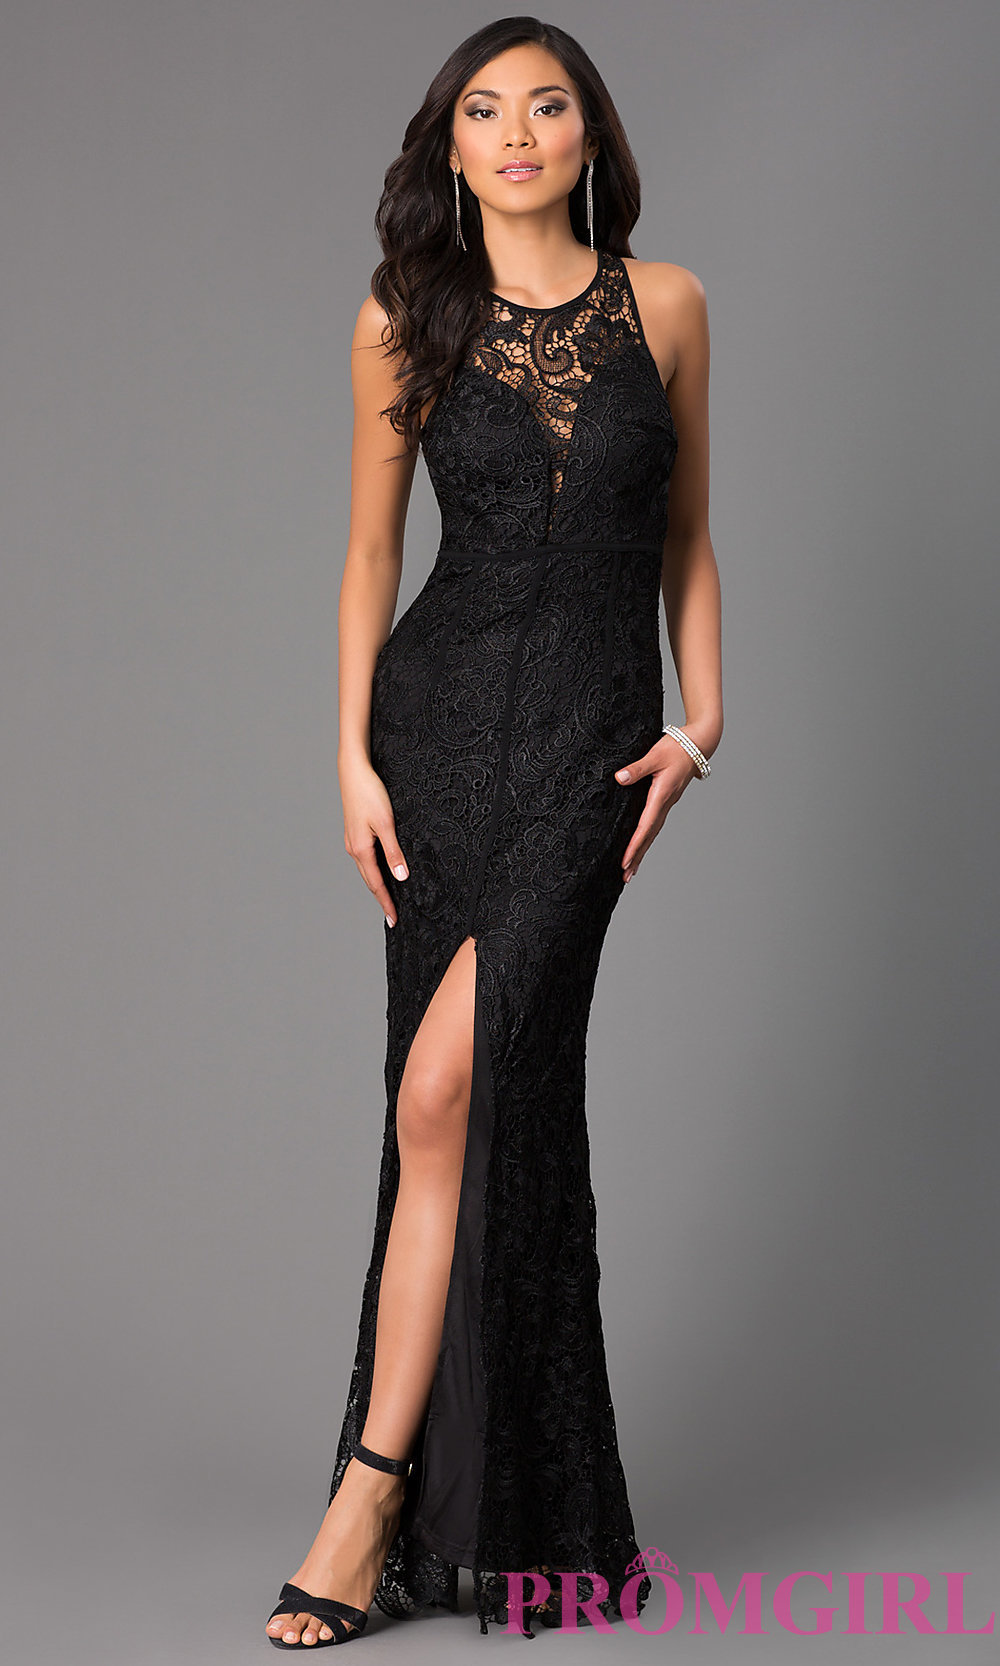 lace long dress hover to zoom · image of long lace sleeveless dress ... rpzowzd